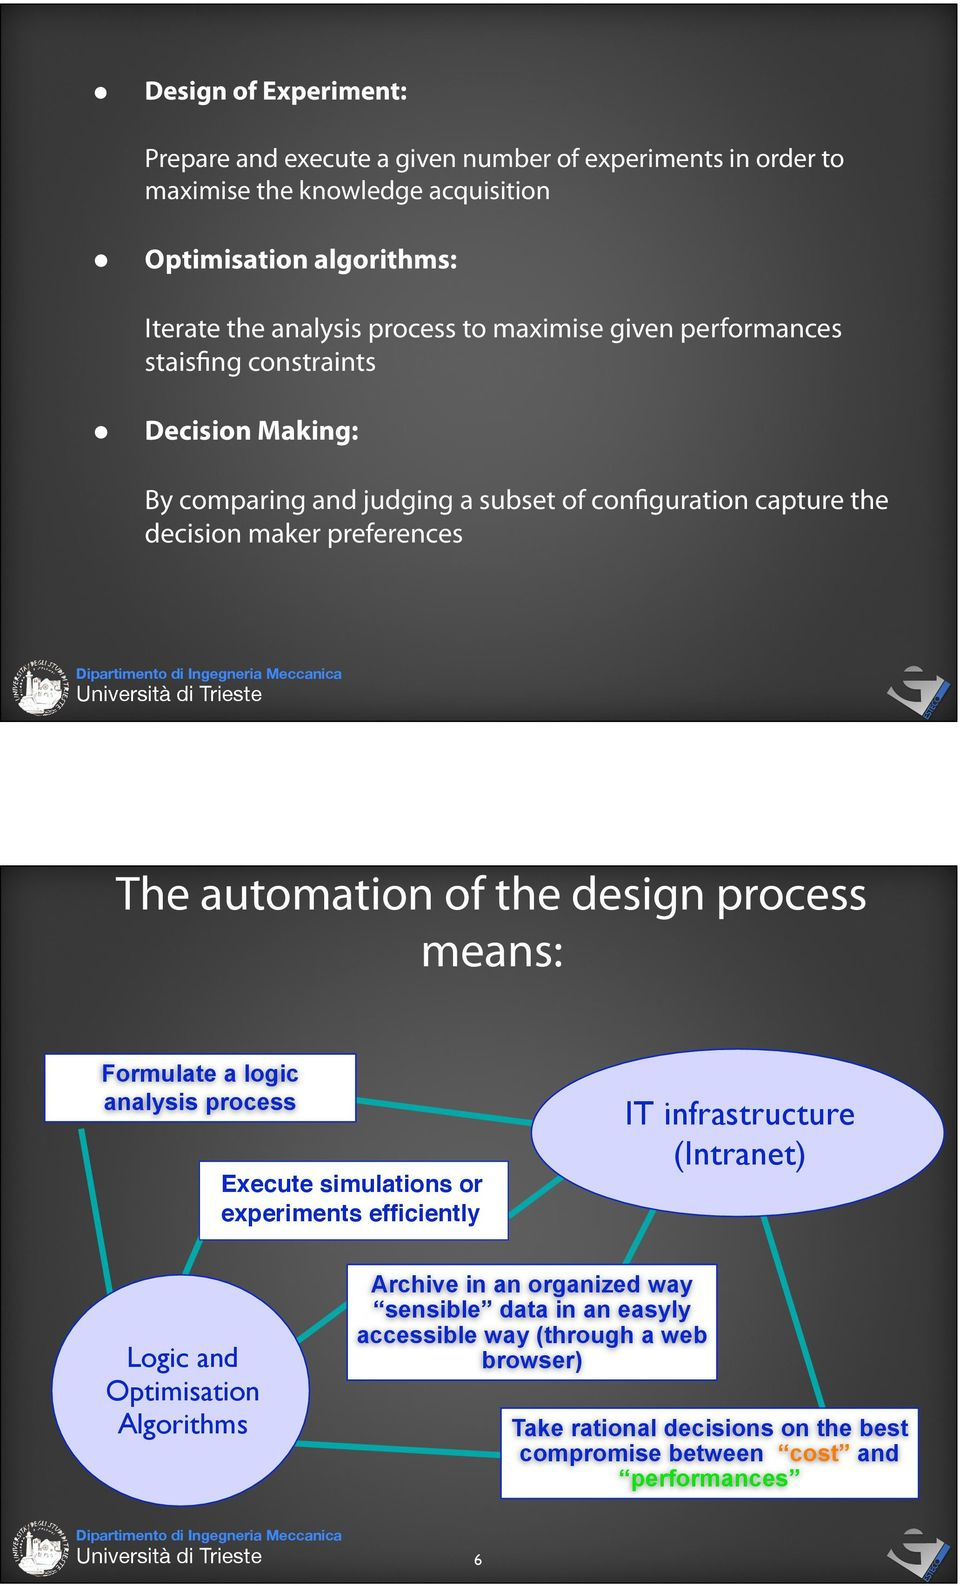 automation of the design process means: Formulate a logic analysis process Execute simulations or experiments efficiently IT infrastructure (Intranet) Logic and Optimisation